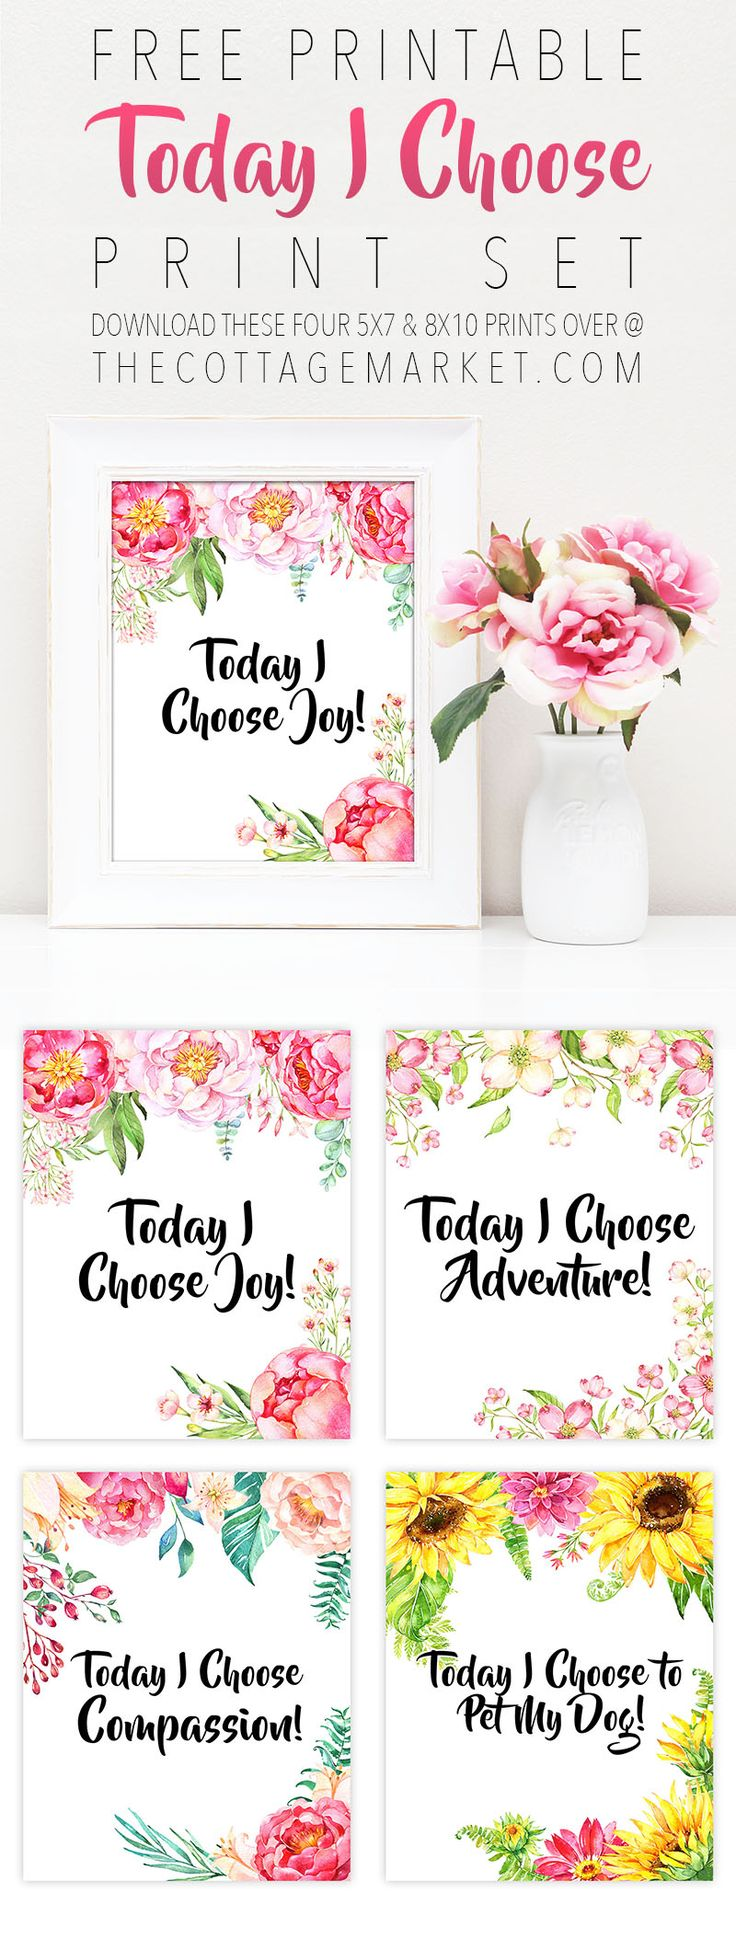 FREE PRINTABLE Today I Choose Print Set!  A touch of inspiration for your day!